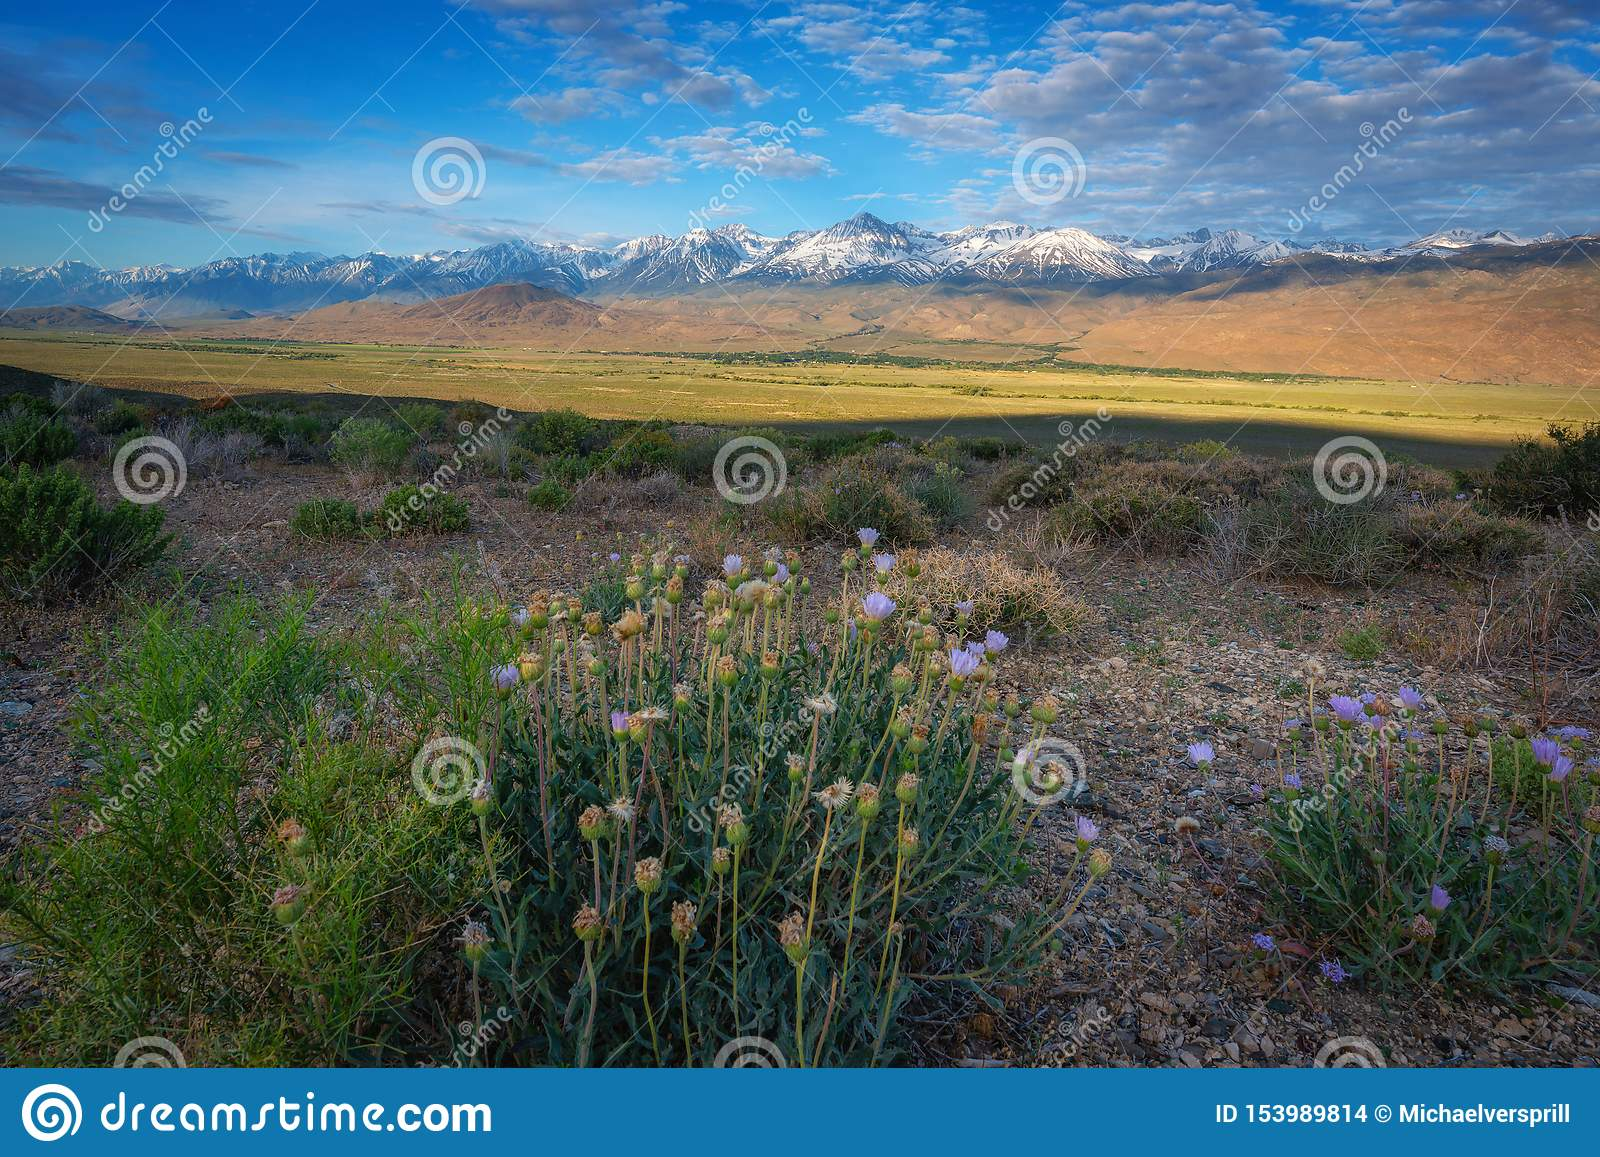 Flowers At Owens Valley In Big Pine California Stock Photo ...